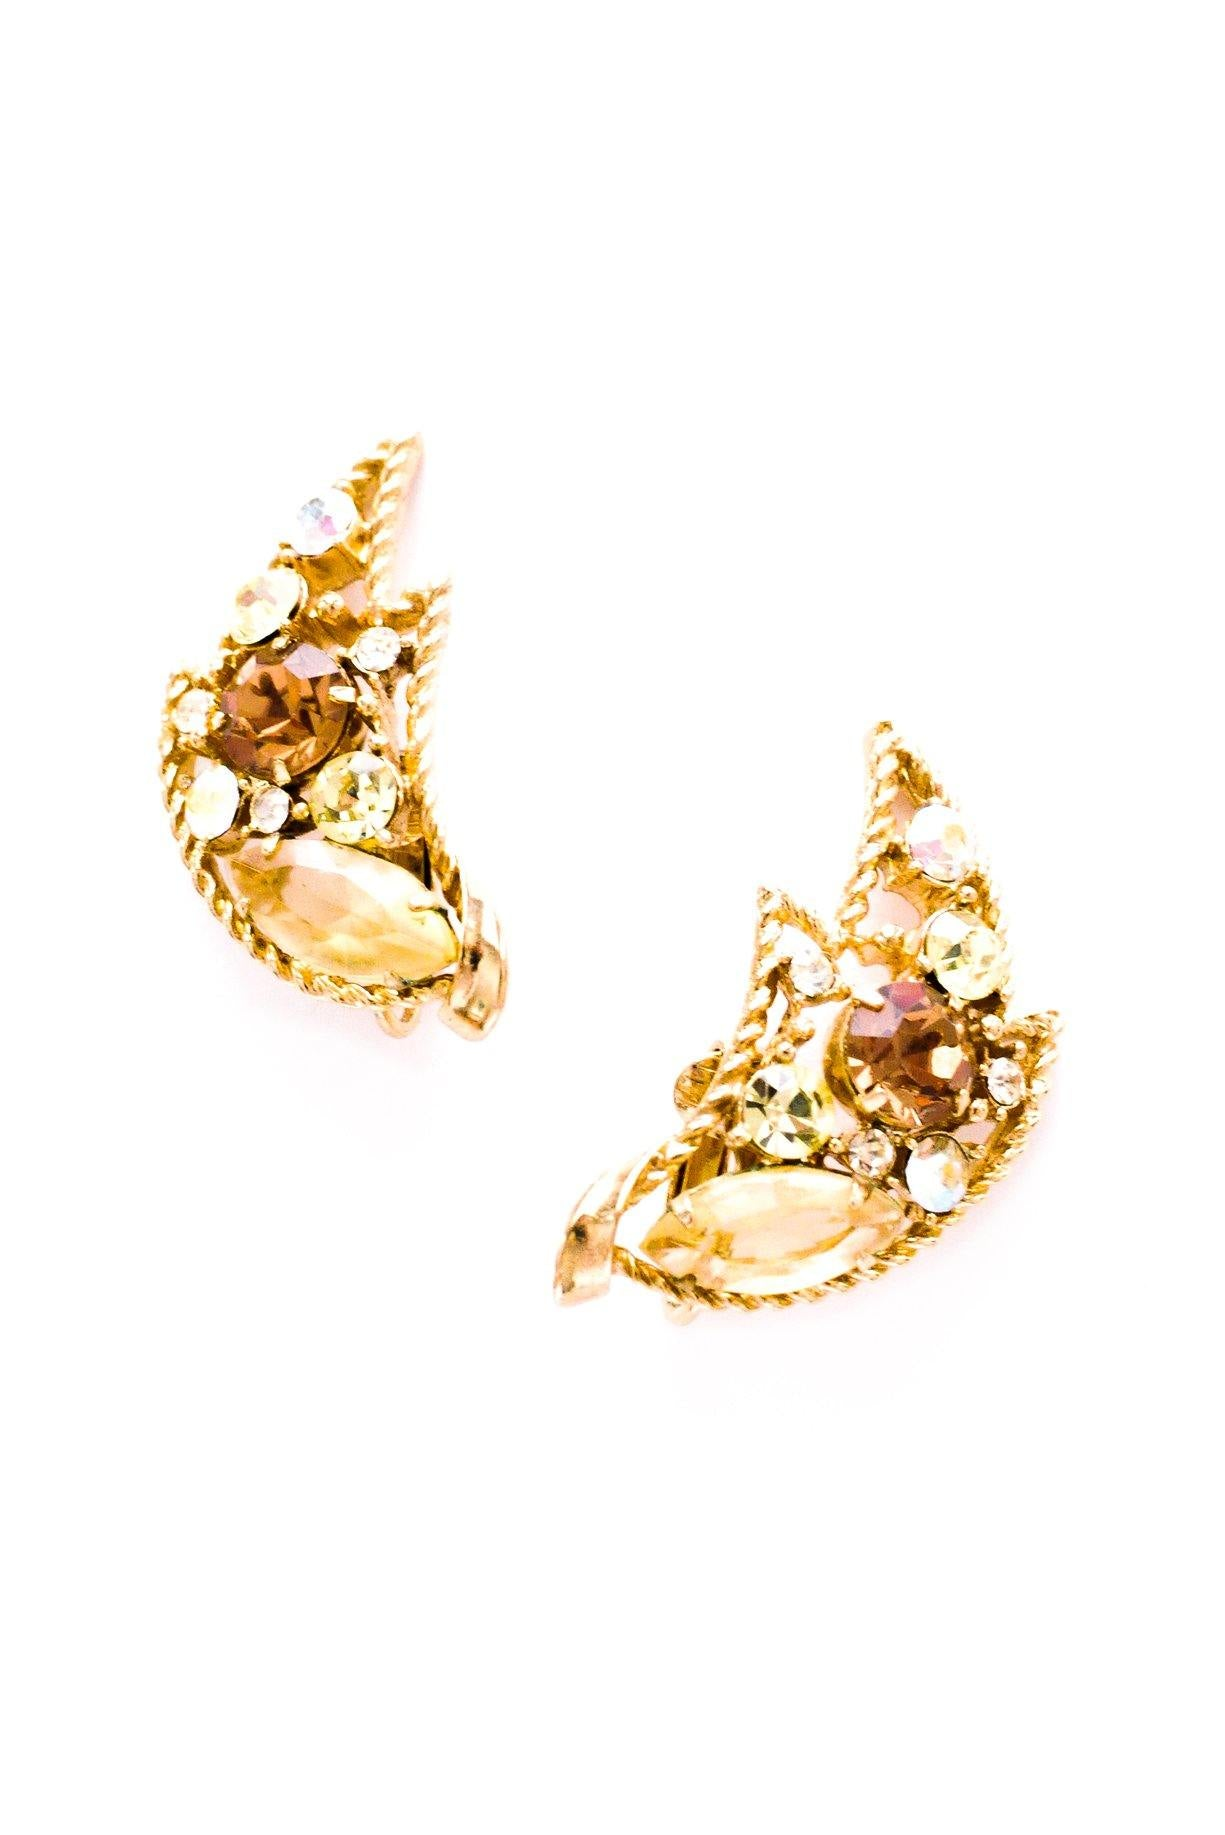 Vintage Emmons Statement Crawler Earrings from Sweet & Spark.